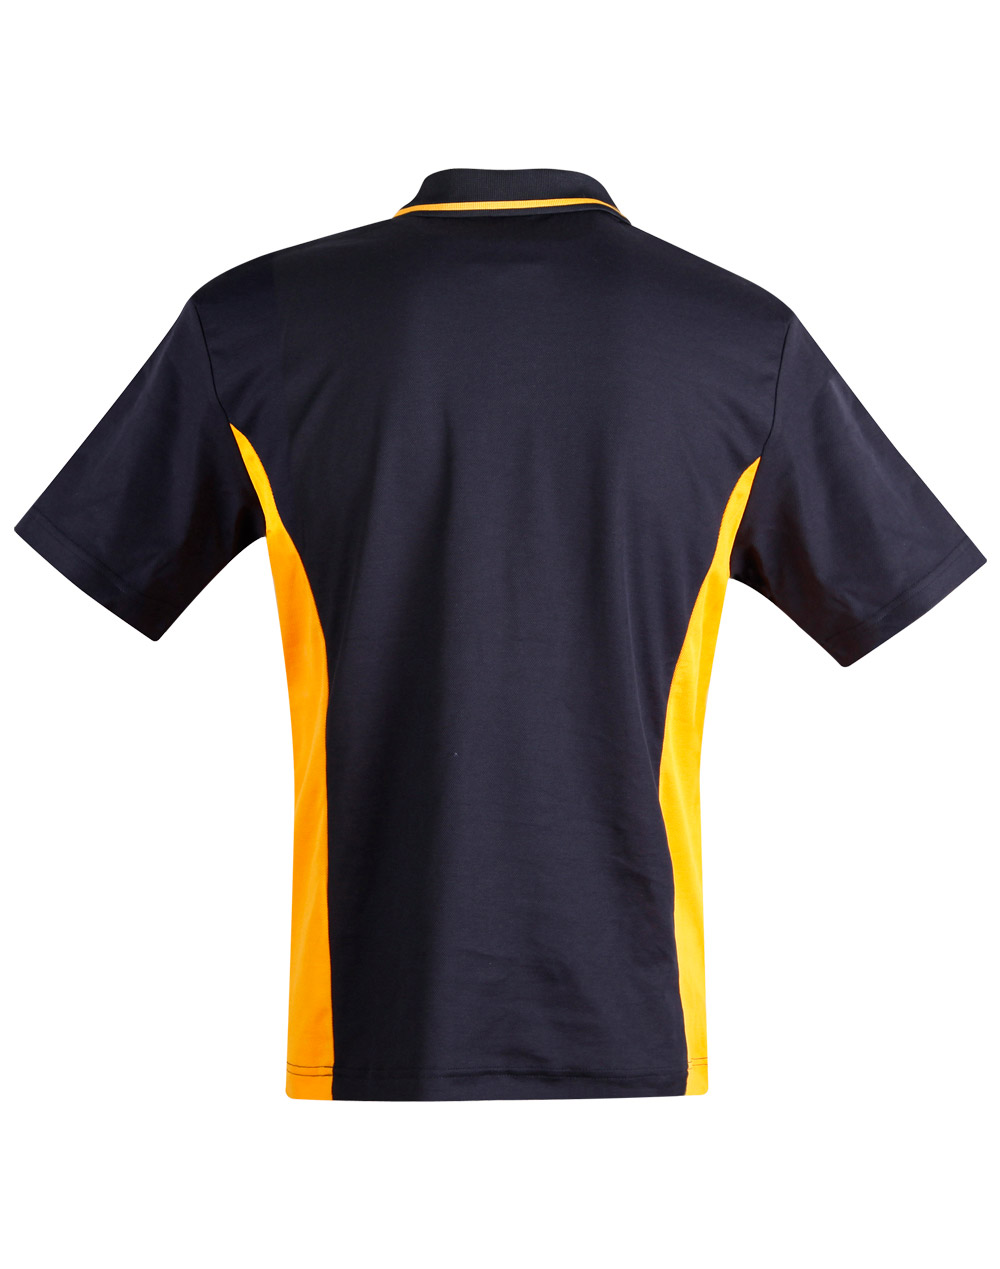 https://s3-ap-southeast-1.amazonaws.com/ws-imgs/POLOSHIRTS/PS73_NavyGold_Back.jpg